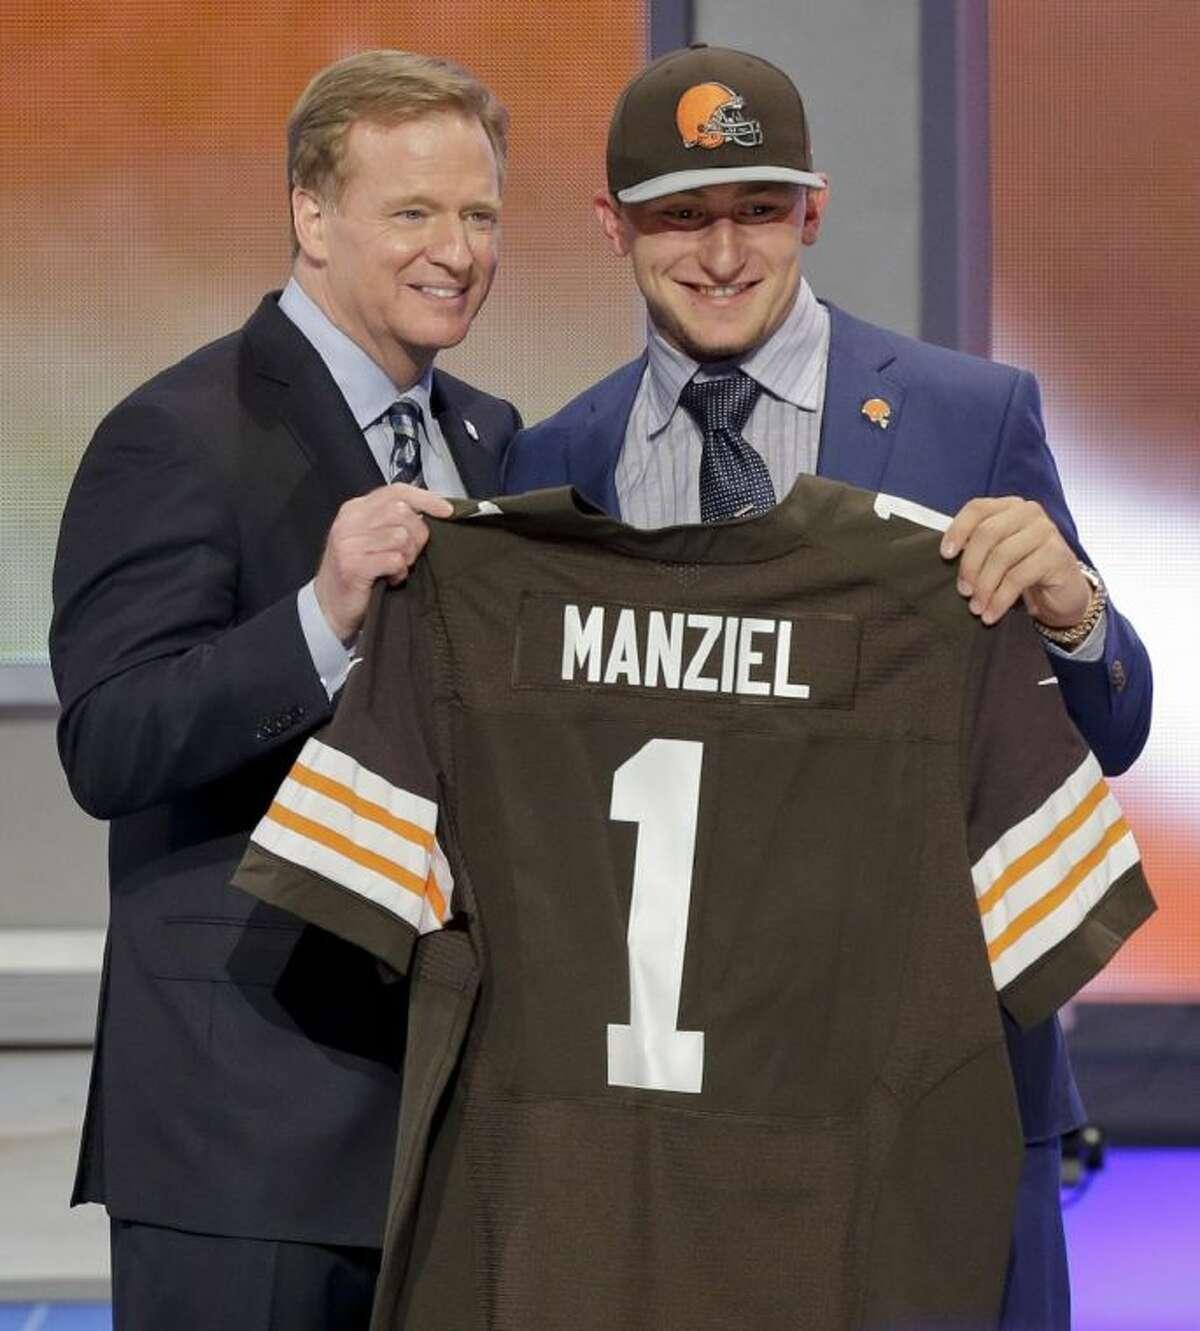 Texas A&M quarterback Johnny Manziel poses with NFL commissioner Roger Goodell after being selected by the Cleveland Browns as the 22nd pick in the first round of the NFL Draft.